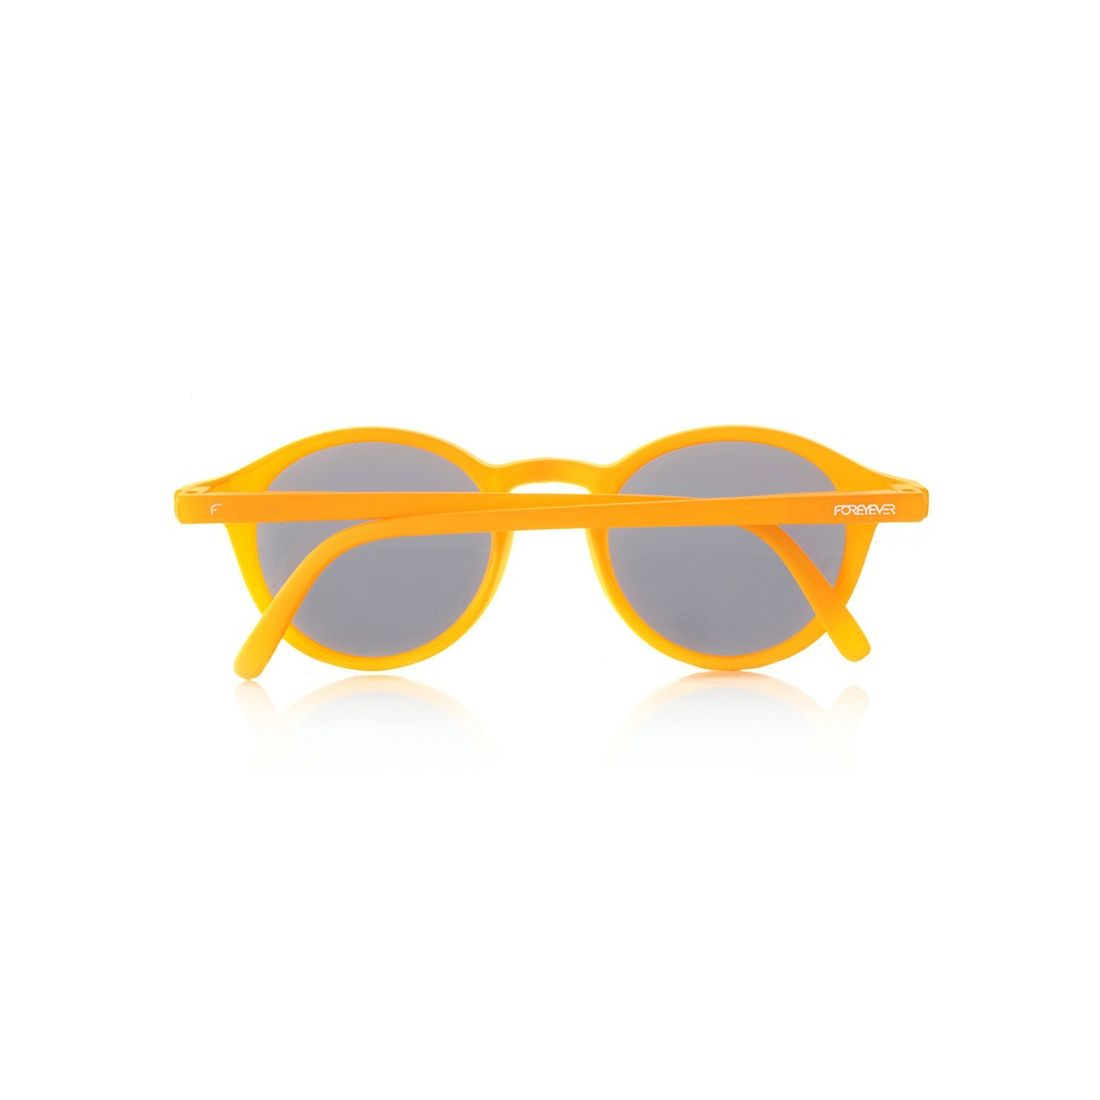 77f5c968d9 Shine - kids sunglasses with black polarized lenses yellow soft touch